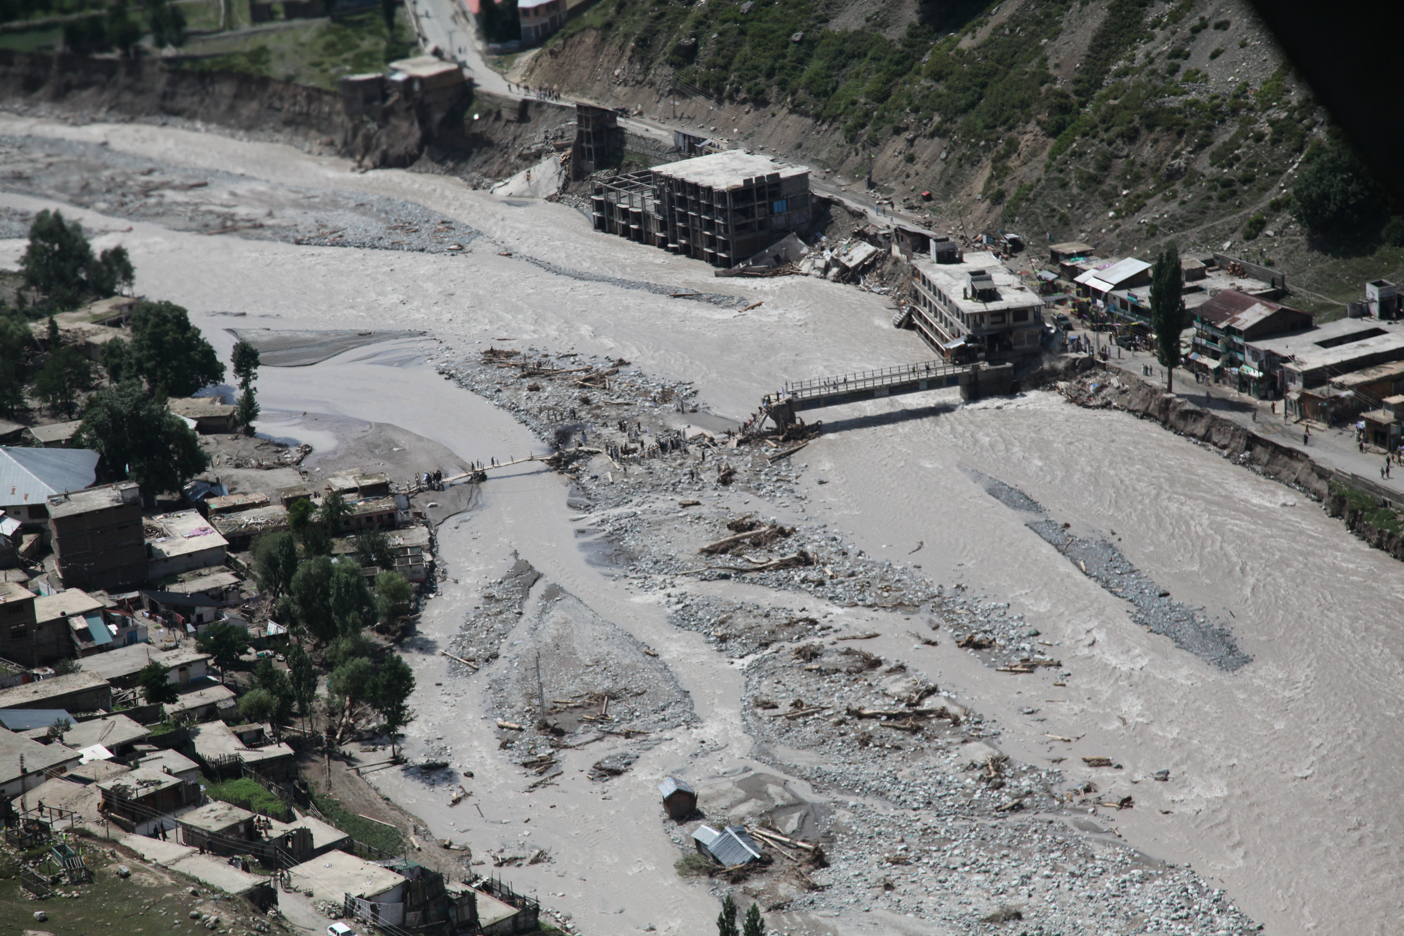 https://i2.wp.com/upload.wikimedia.org/wikipedia/commons/f/f9/Damaged_bridge_from_flooding_in_Pakistan%2C_2010.JPG